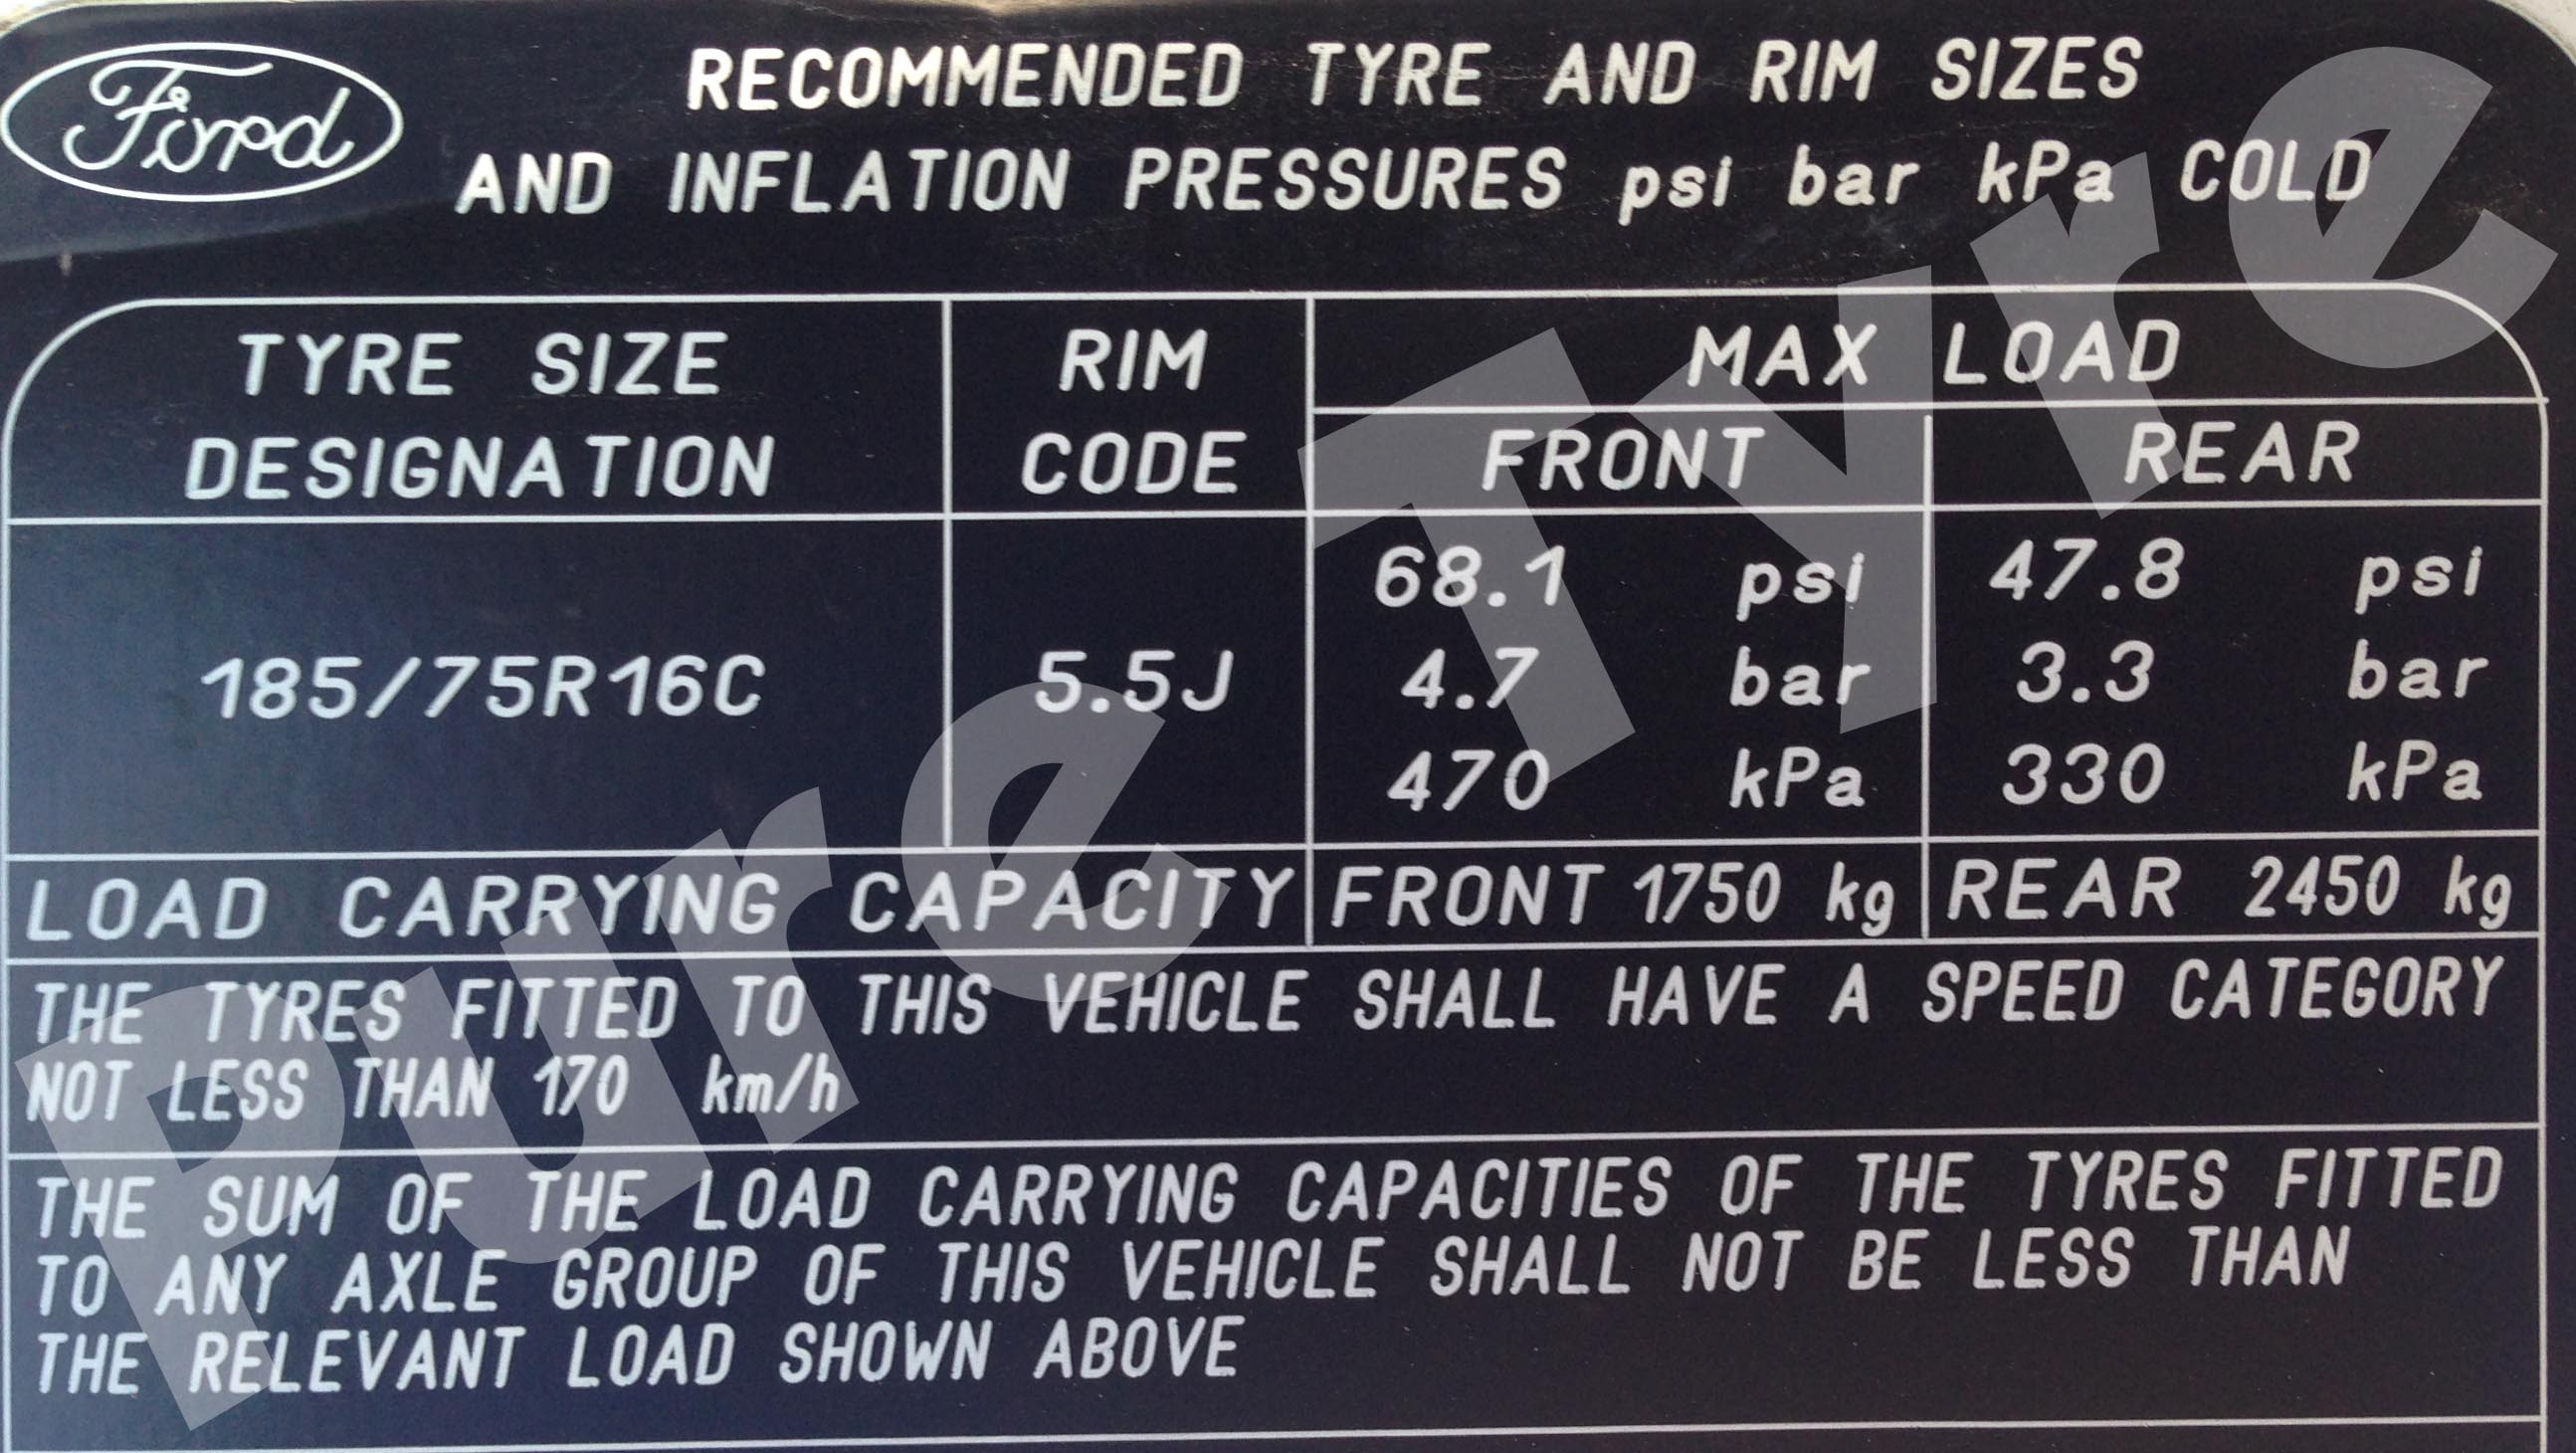 Wheel Tire Size Chart >> Ford Transit 18575R16 Twin Rear Wheels Tyre Pressure Placard   Pure Tyre 01603 462959